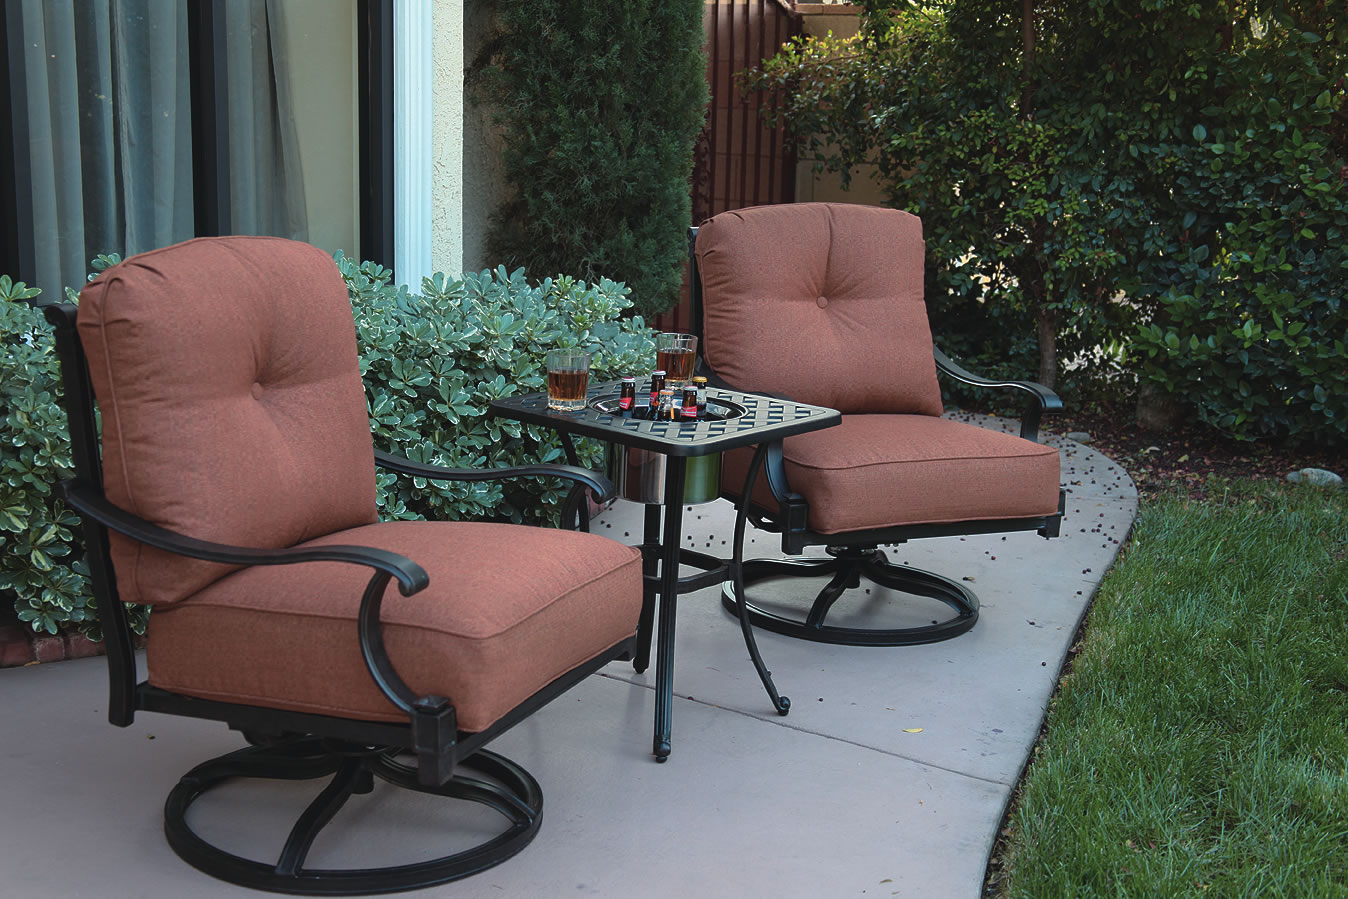 Patio Furniture Cast Aluminum Deep Seating Rocker Swivel